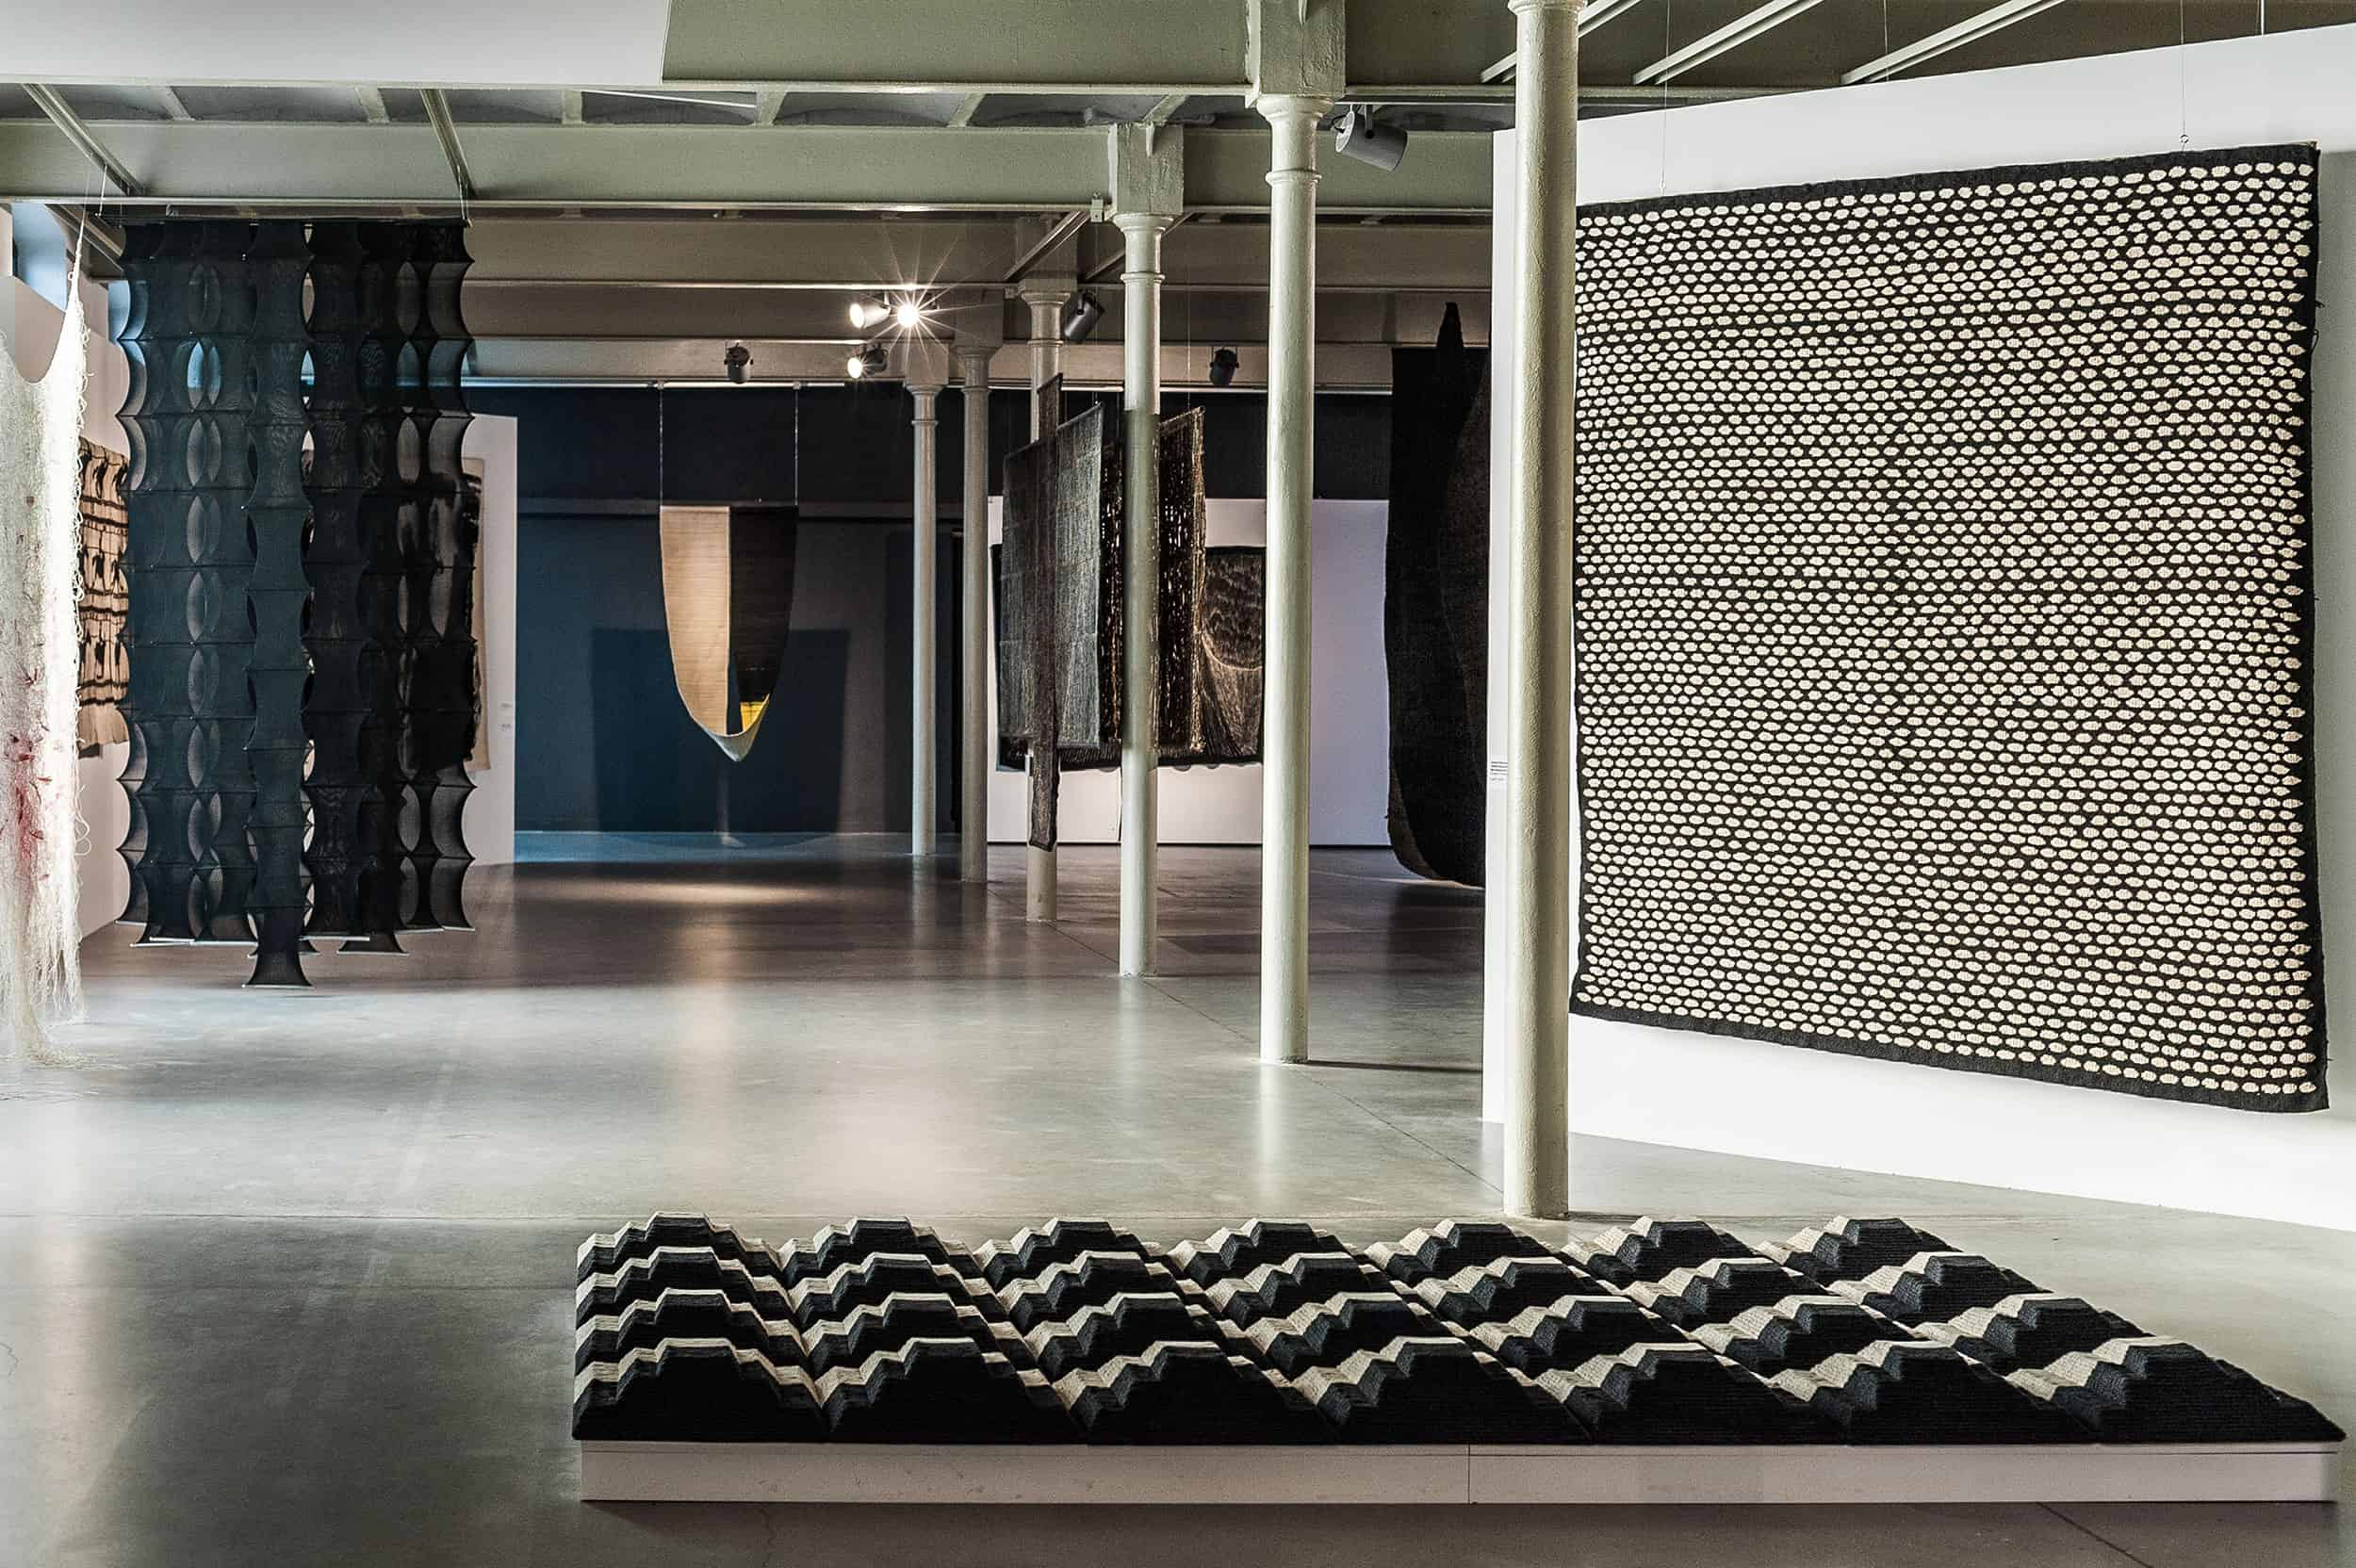 'Rebellion of the matter' exhibition, the Central Museum of Textiles in Łódź